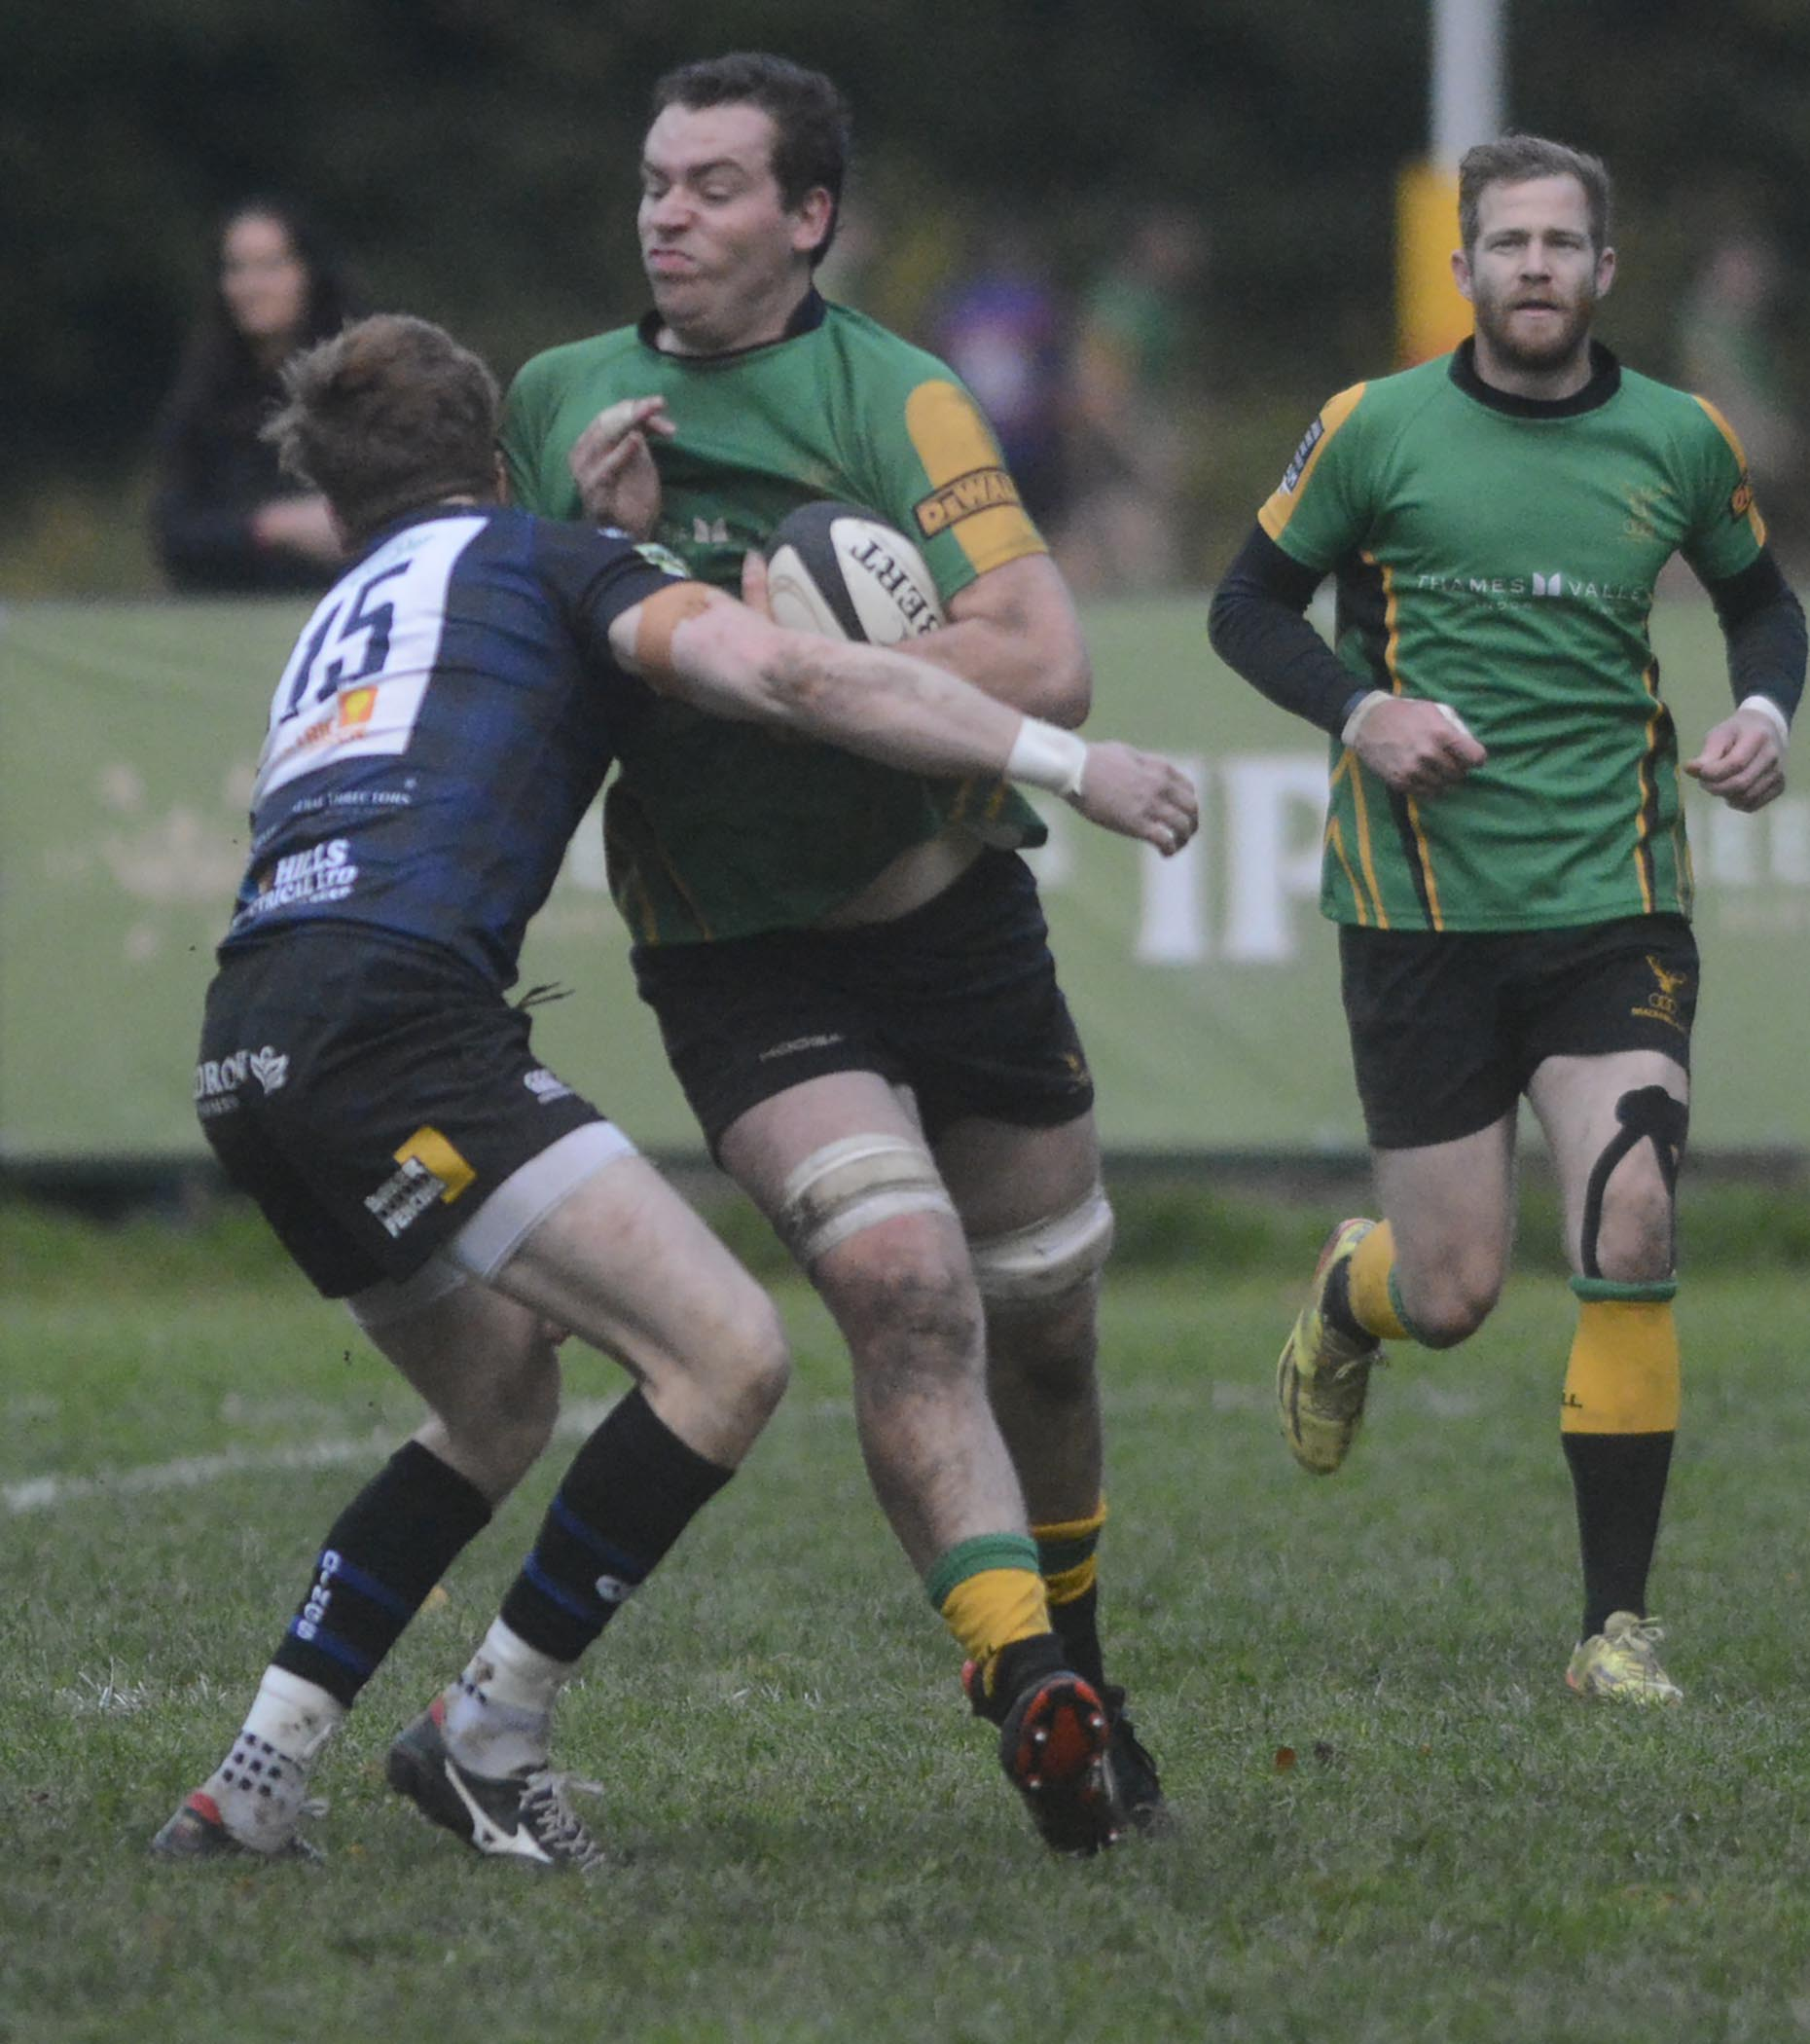 Lachy Valentine was among the Bracknell try scorers.